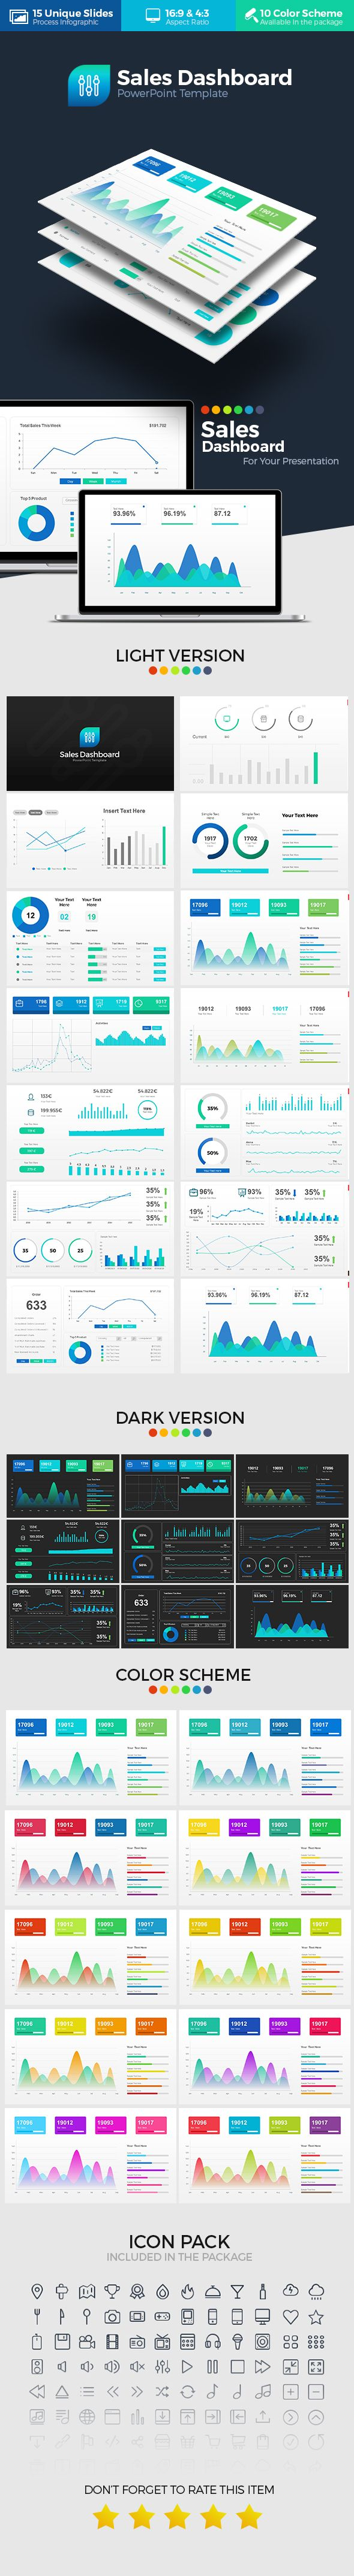 Pin By Rrgraph Design On Rrgraph Gallery Pinterest Data Charts